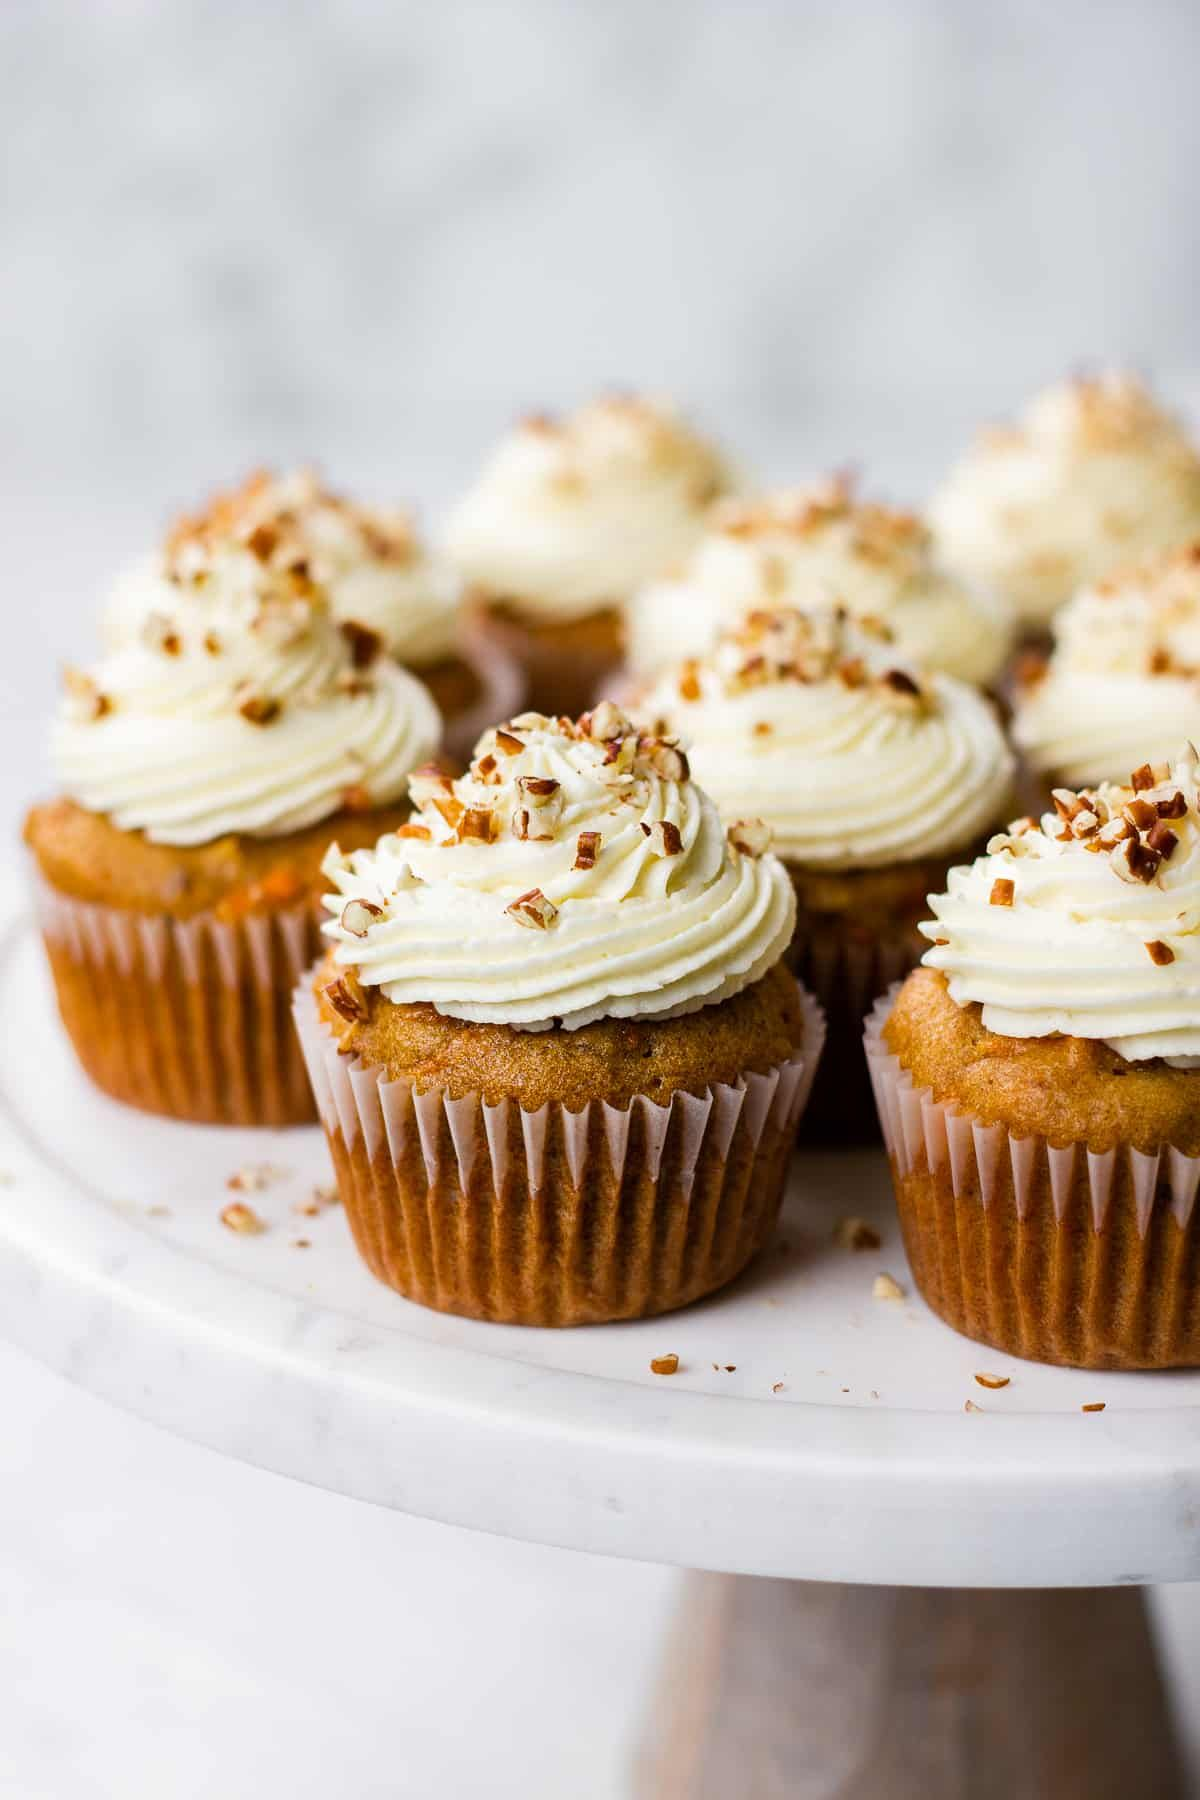 Carrot Cake Cupcakes with Cream Cheese Frosting | Veronika's Kitchen